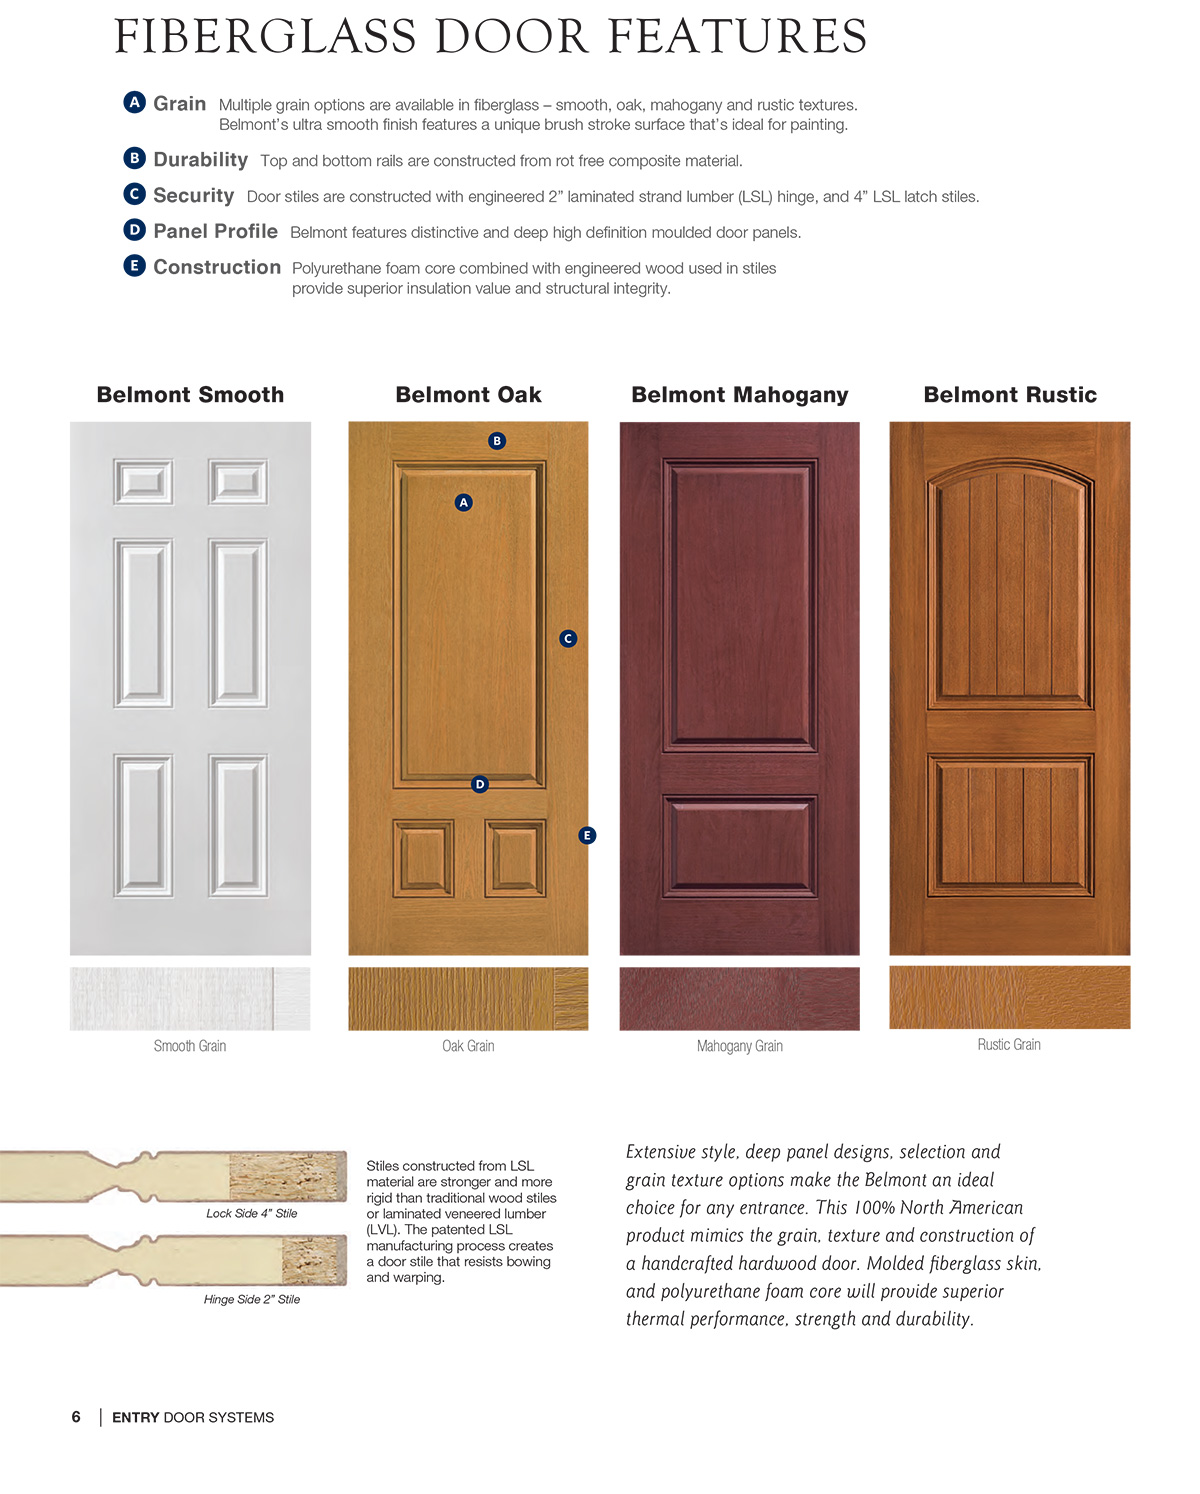 maintain a windows winmax ensure end fiberglass high corporation our doors come quality materials many years replacement door feel look top and your to fibreglass for trimline that offers